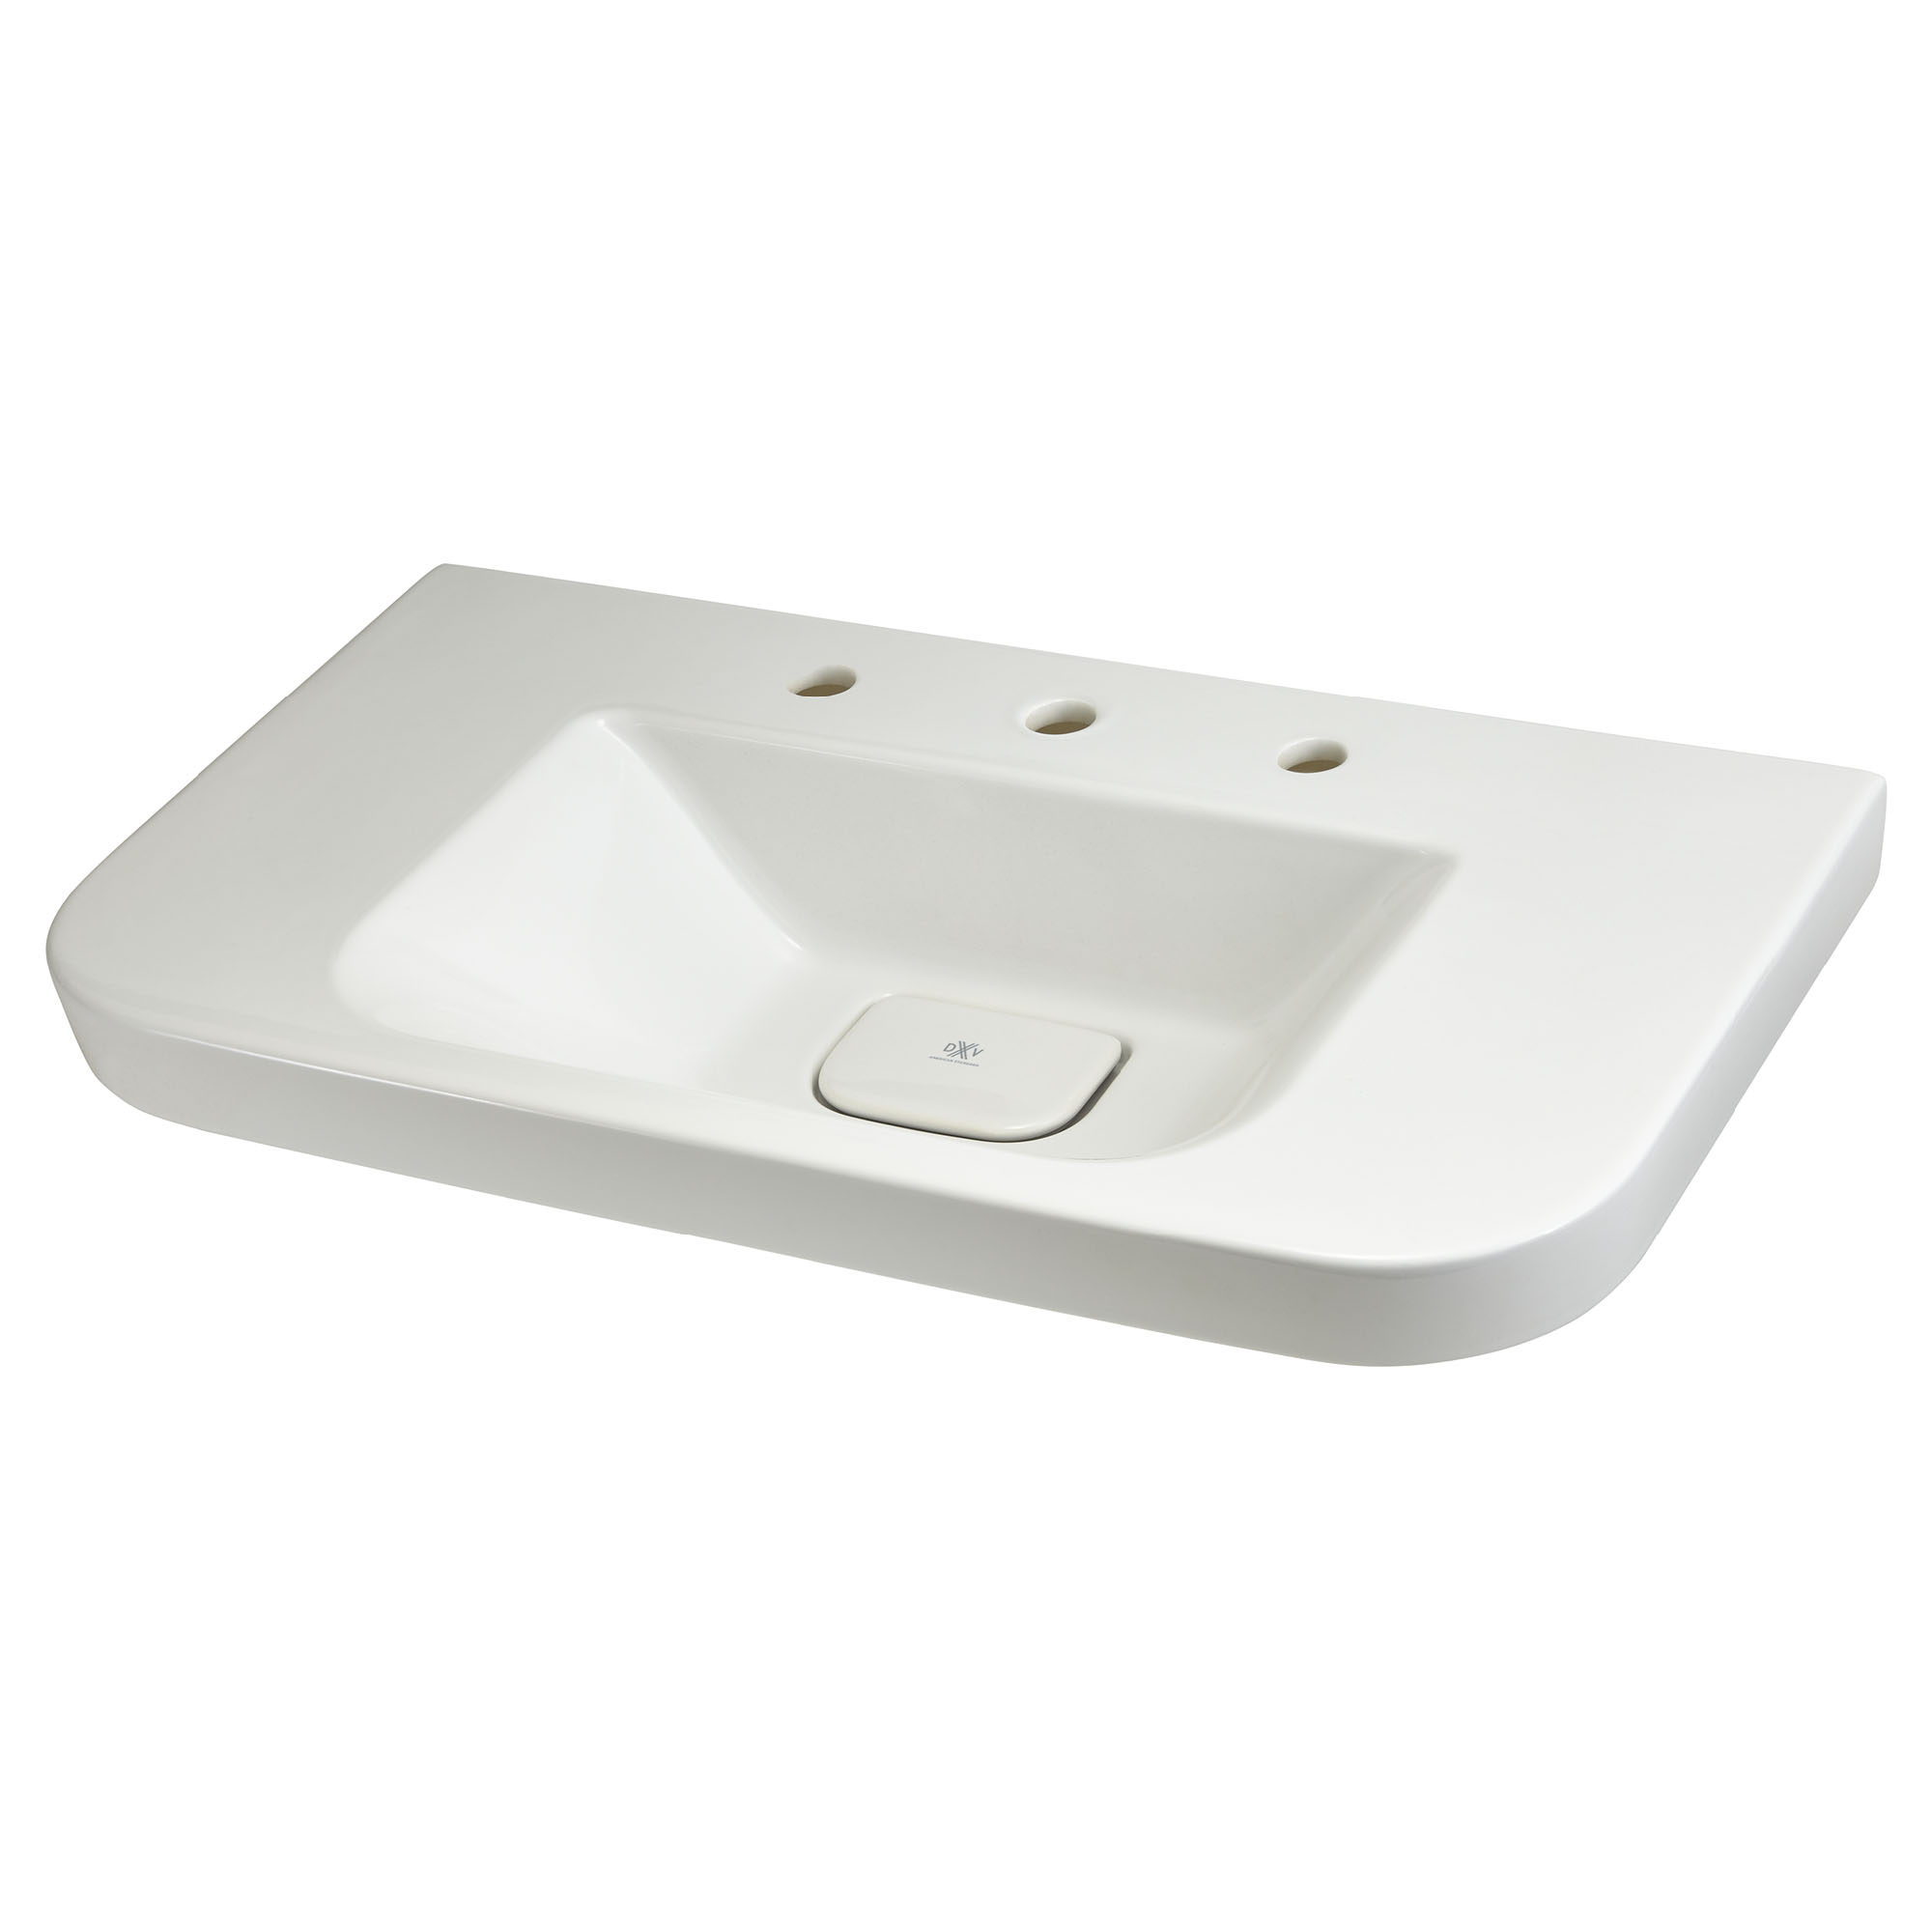 Lyndon 33 Inch Wall- Mount Bathroom Sink – Three Faucet Holes